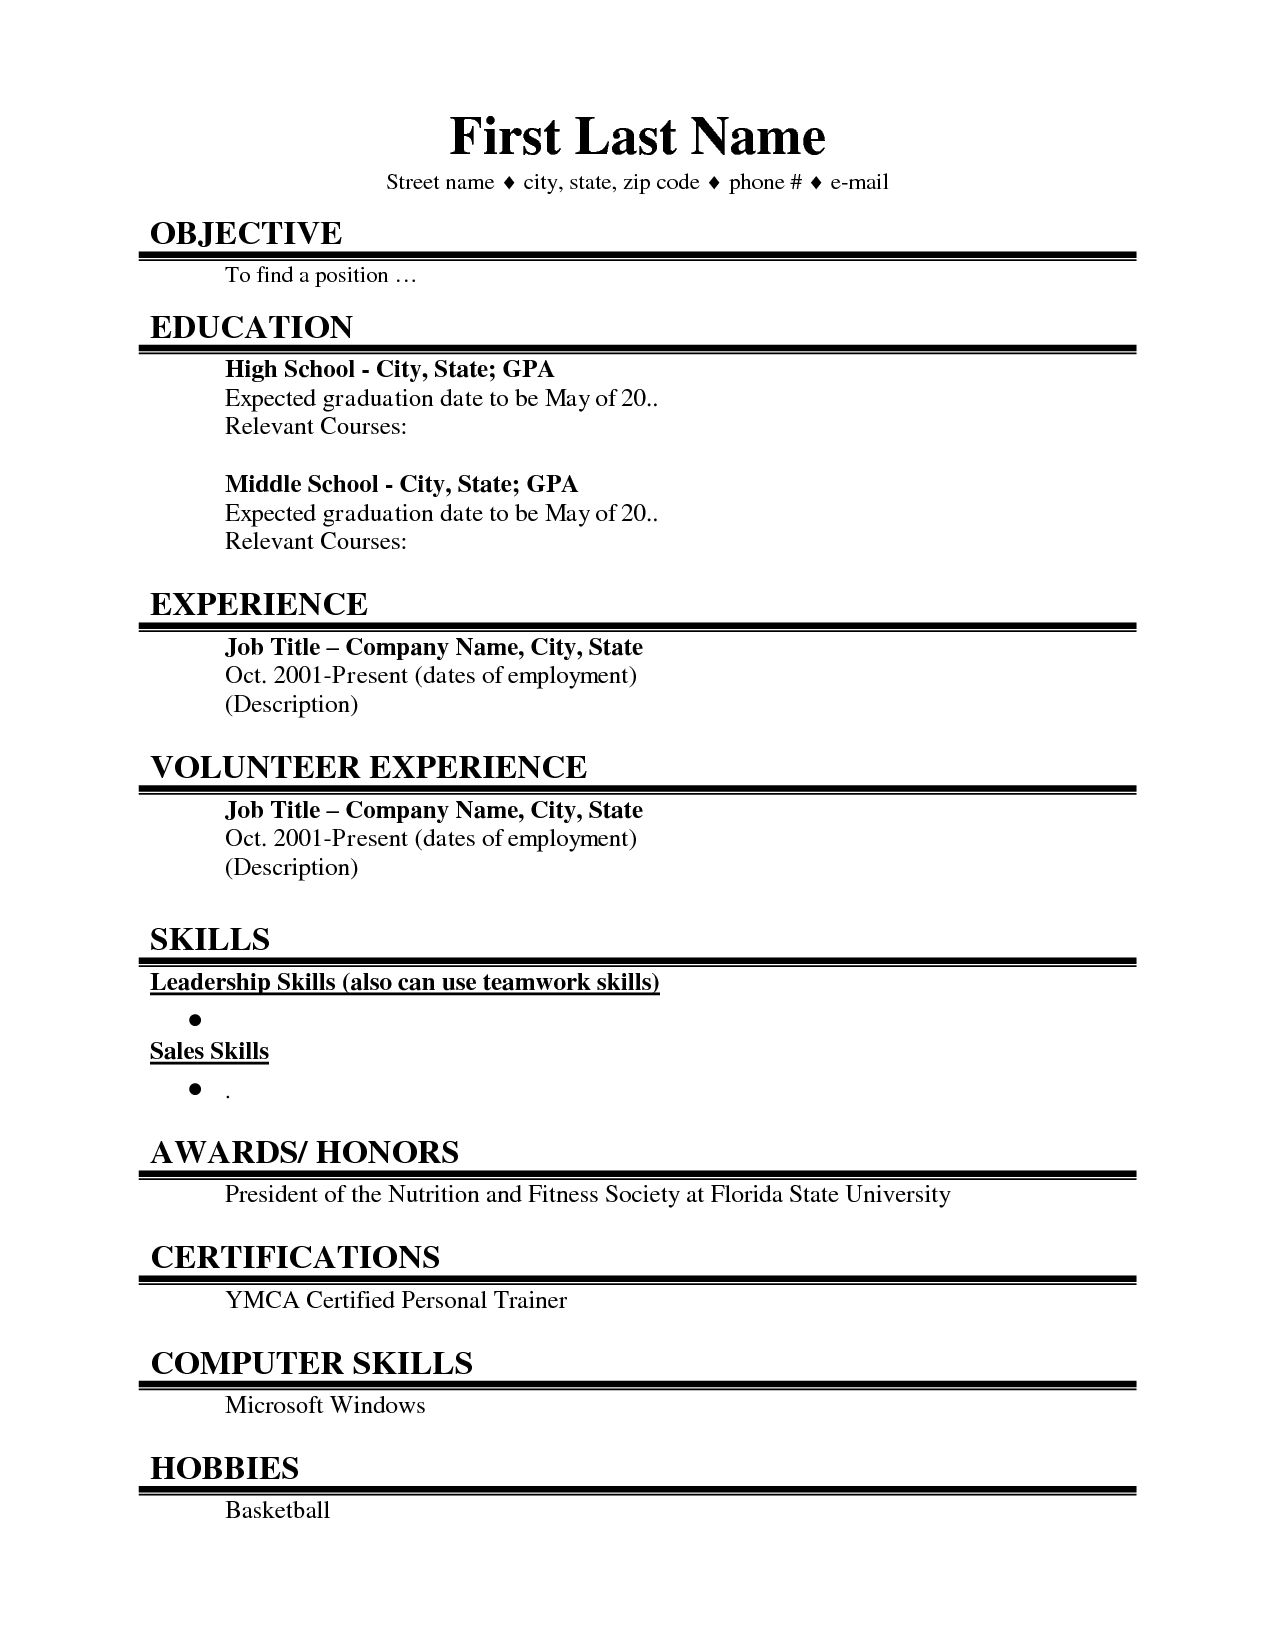 resume outline for first job